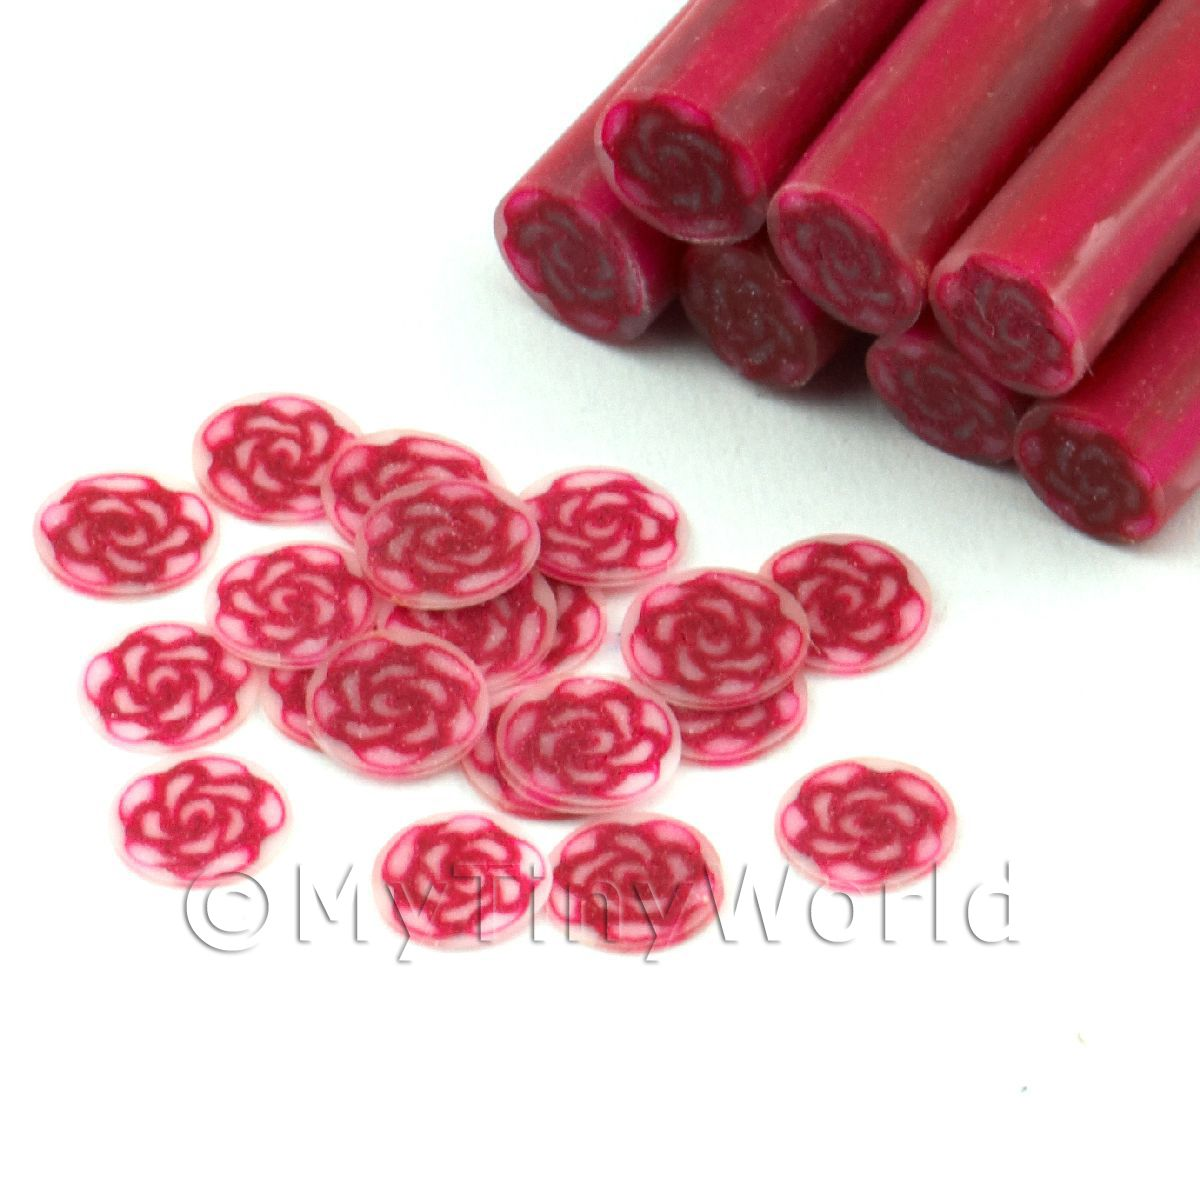 1 Red Rose Cane With Glitter - Nail Art (11NC39)